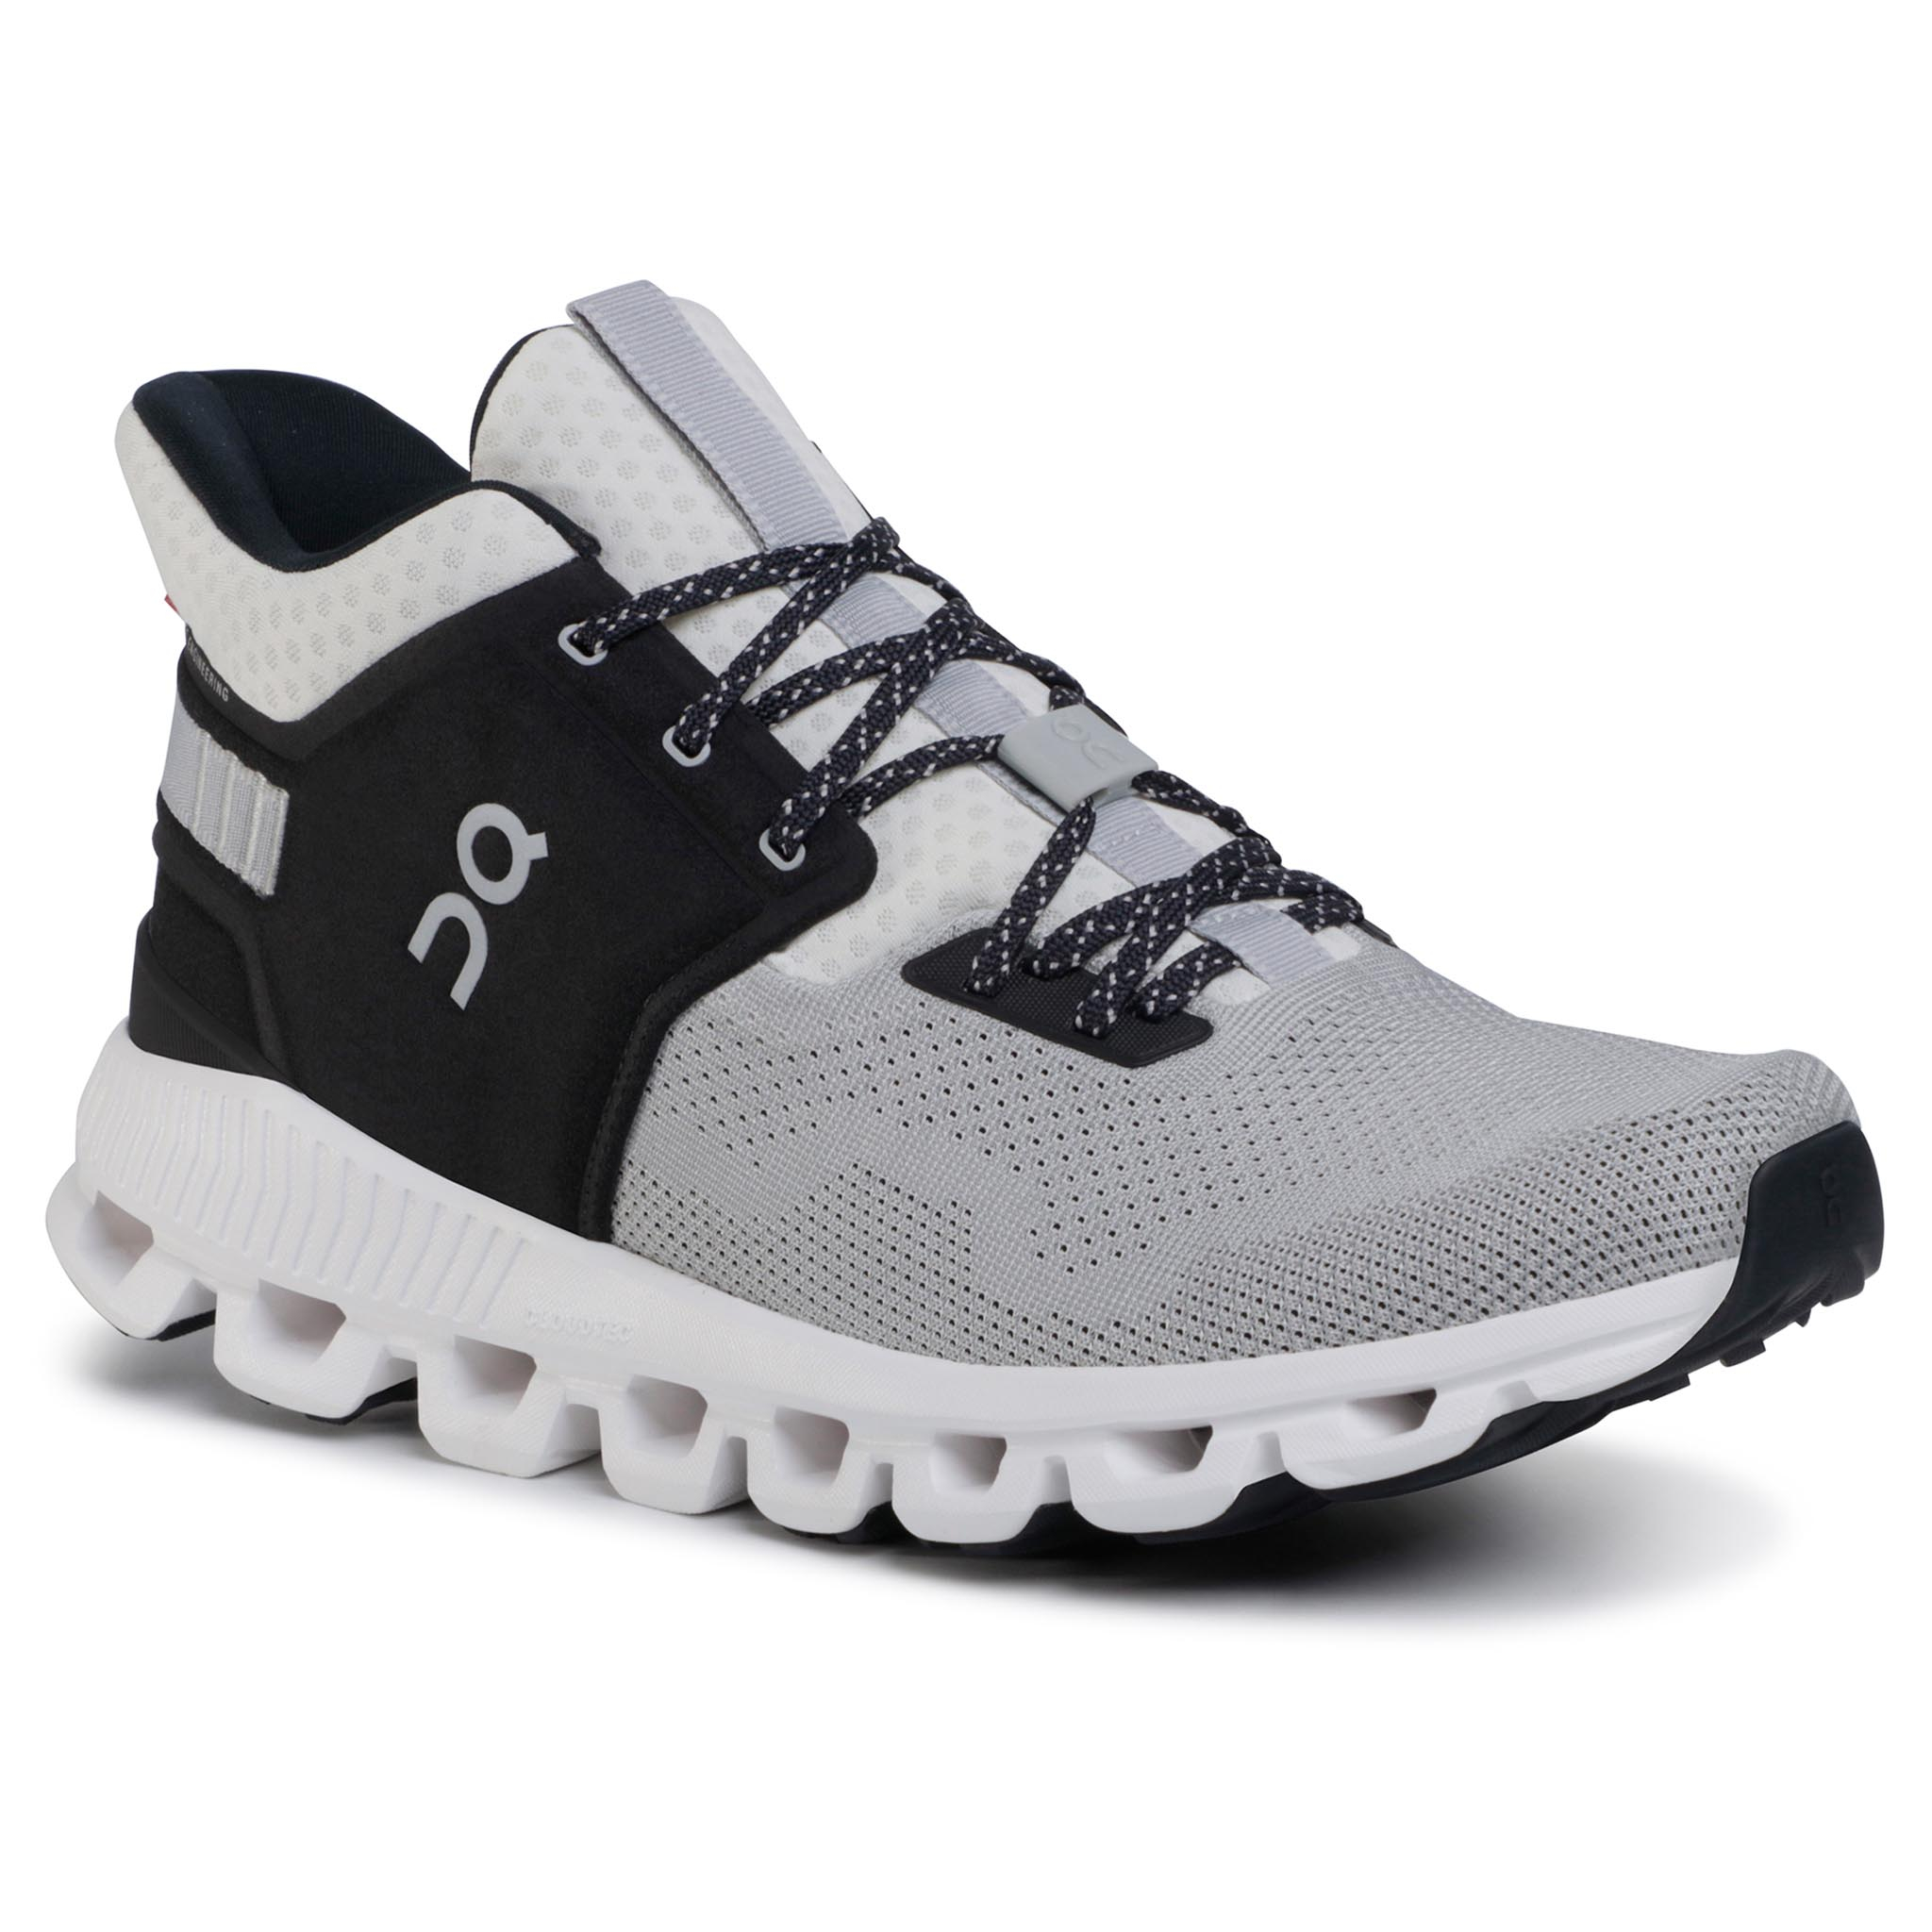 Image of Sneakers ON - Cloud Hi Edge 2899797 Glacier/Black